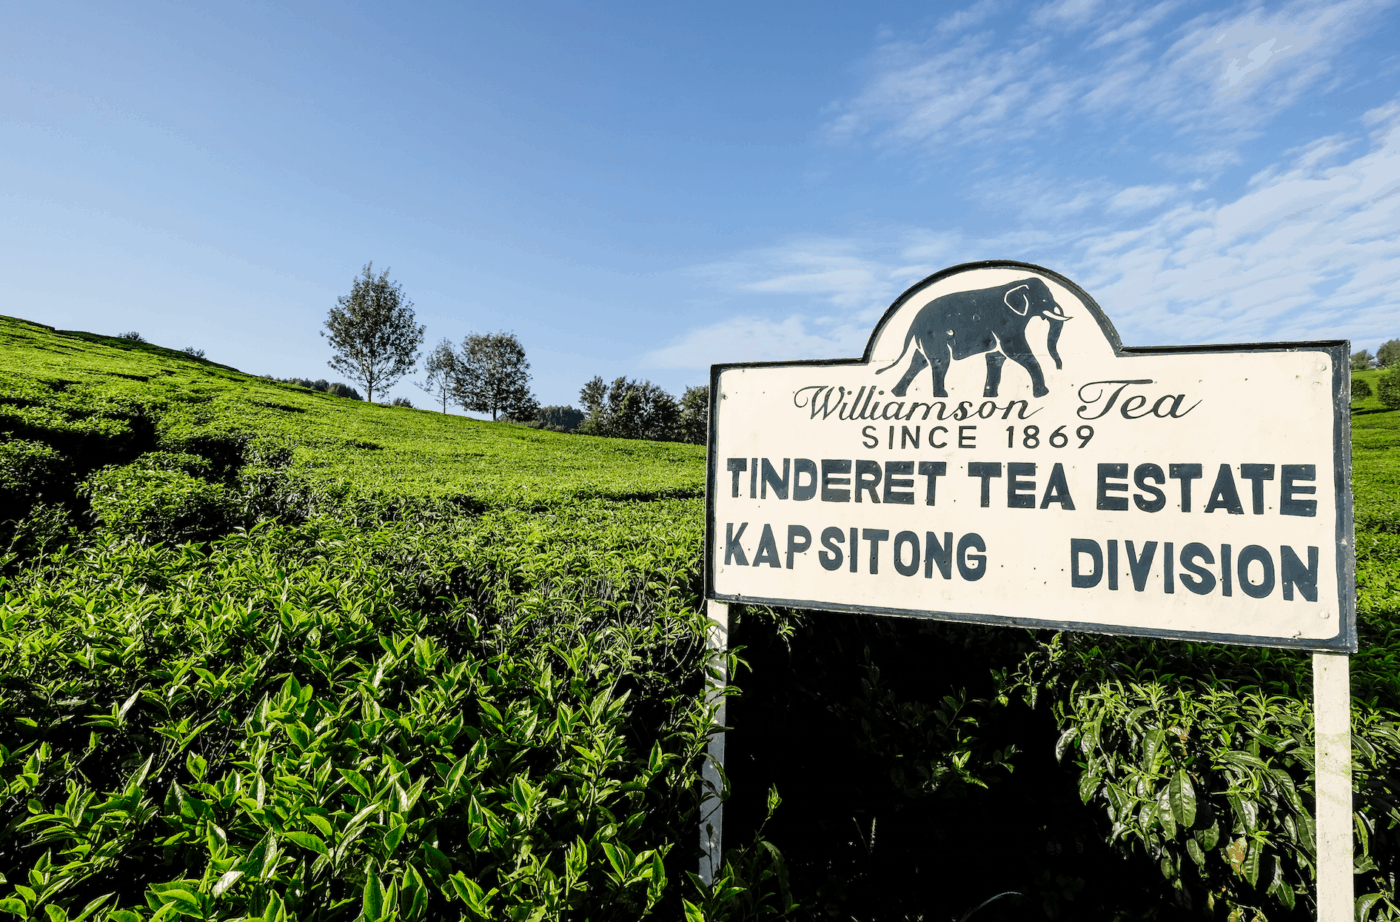 A sign at Williamson Tea's Tinderet Tea Farm